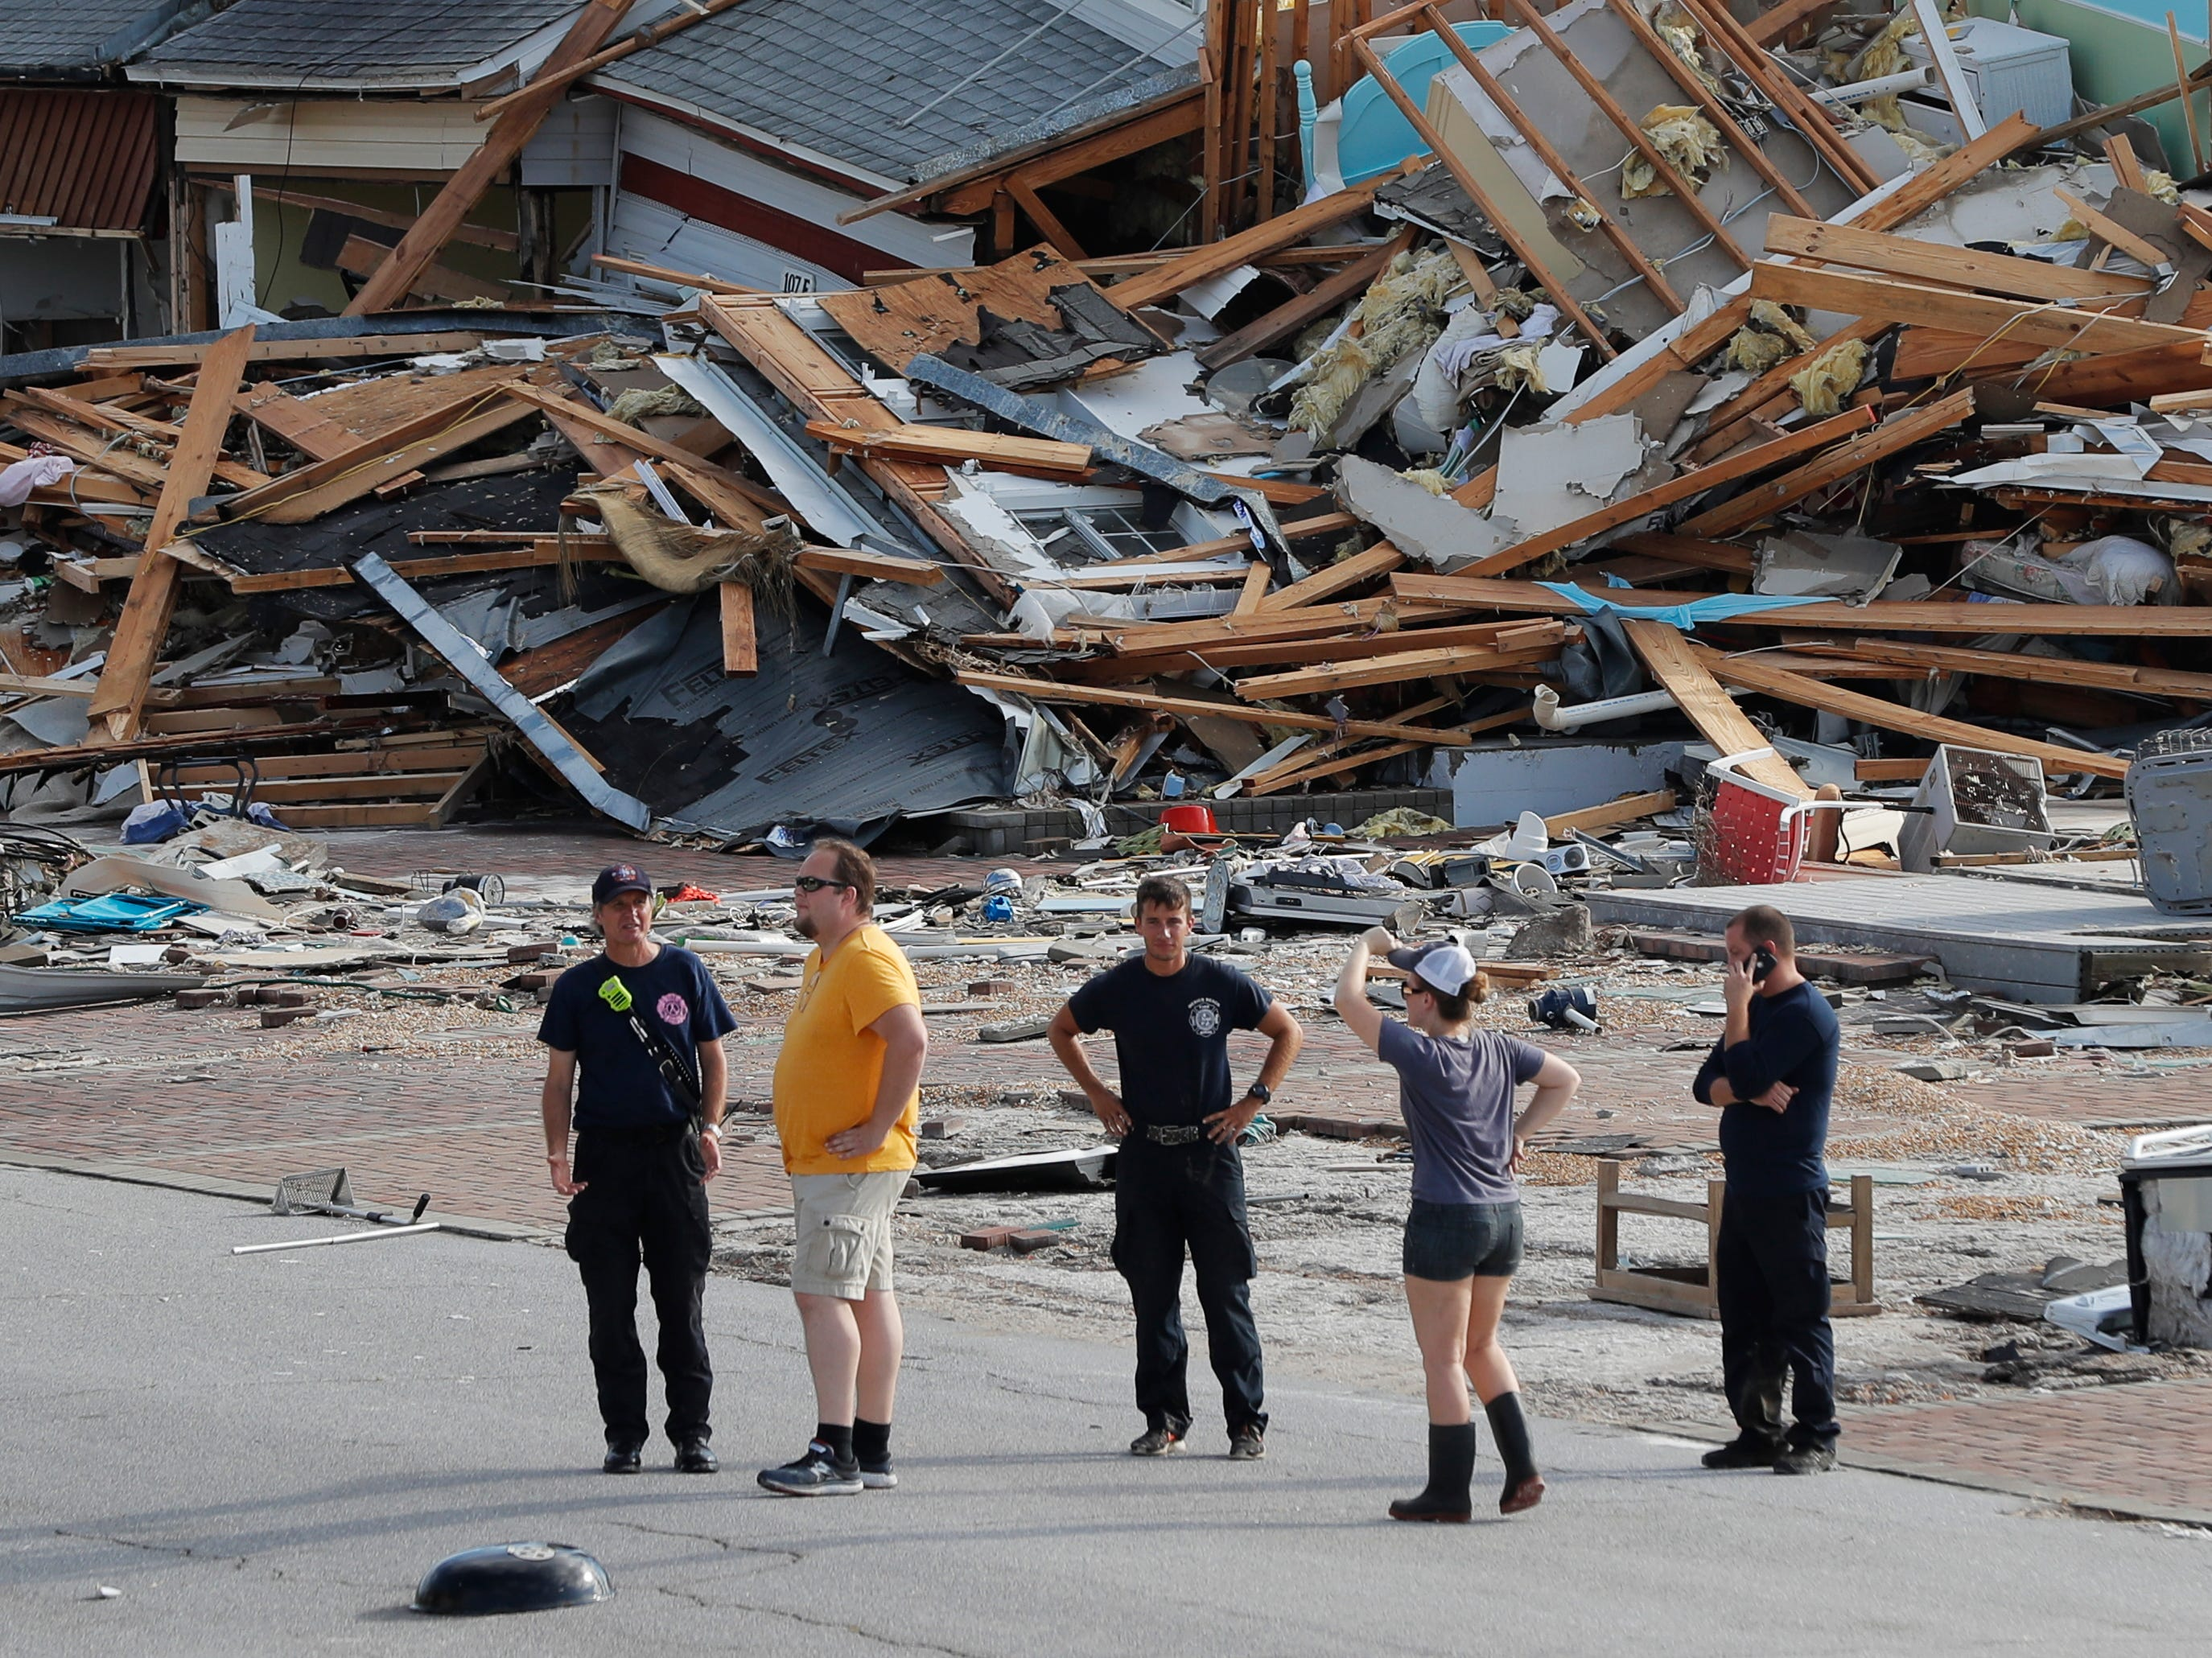 Rescue personnel perform a search in the aftermath of Hurricane Michael in Mexico Beach, Fla., Thursday, Oct. 11, 2018.